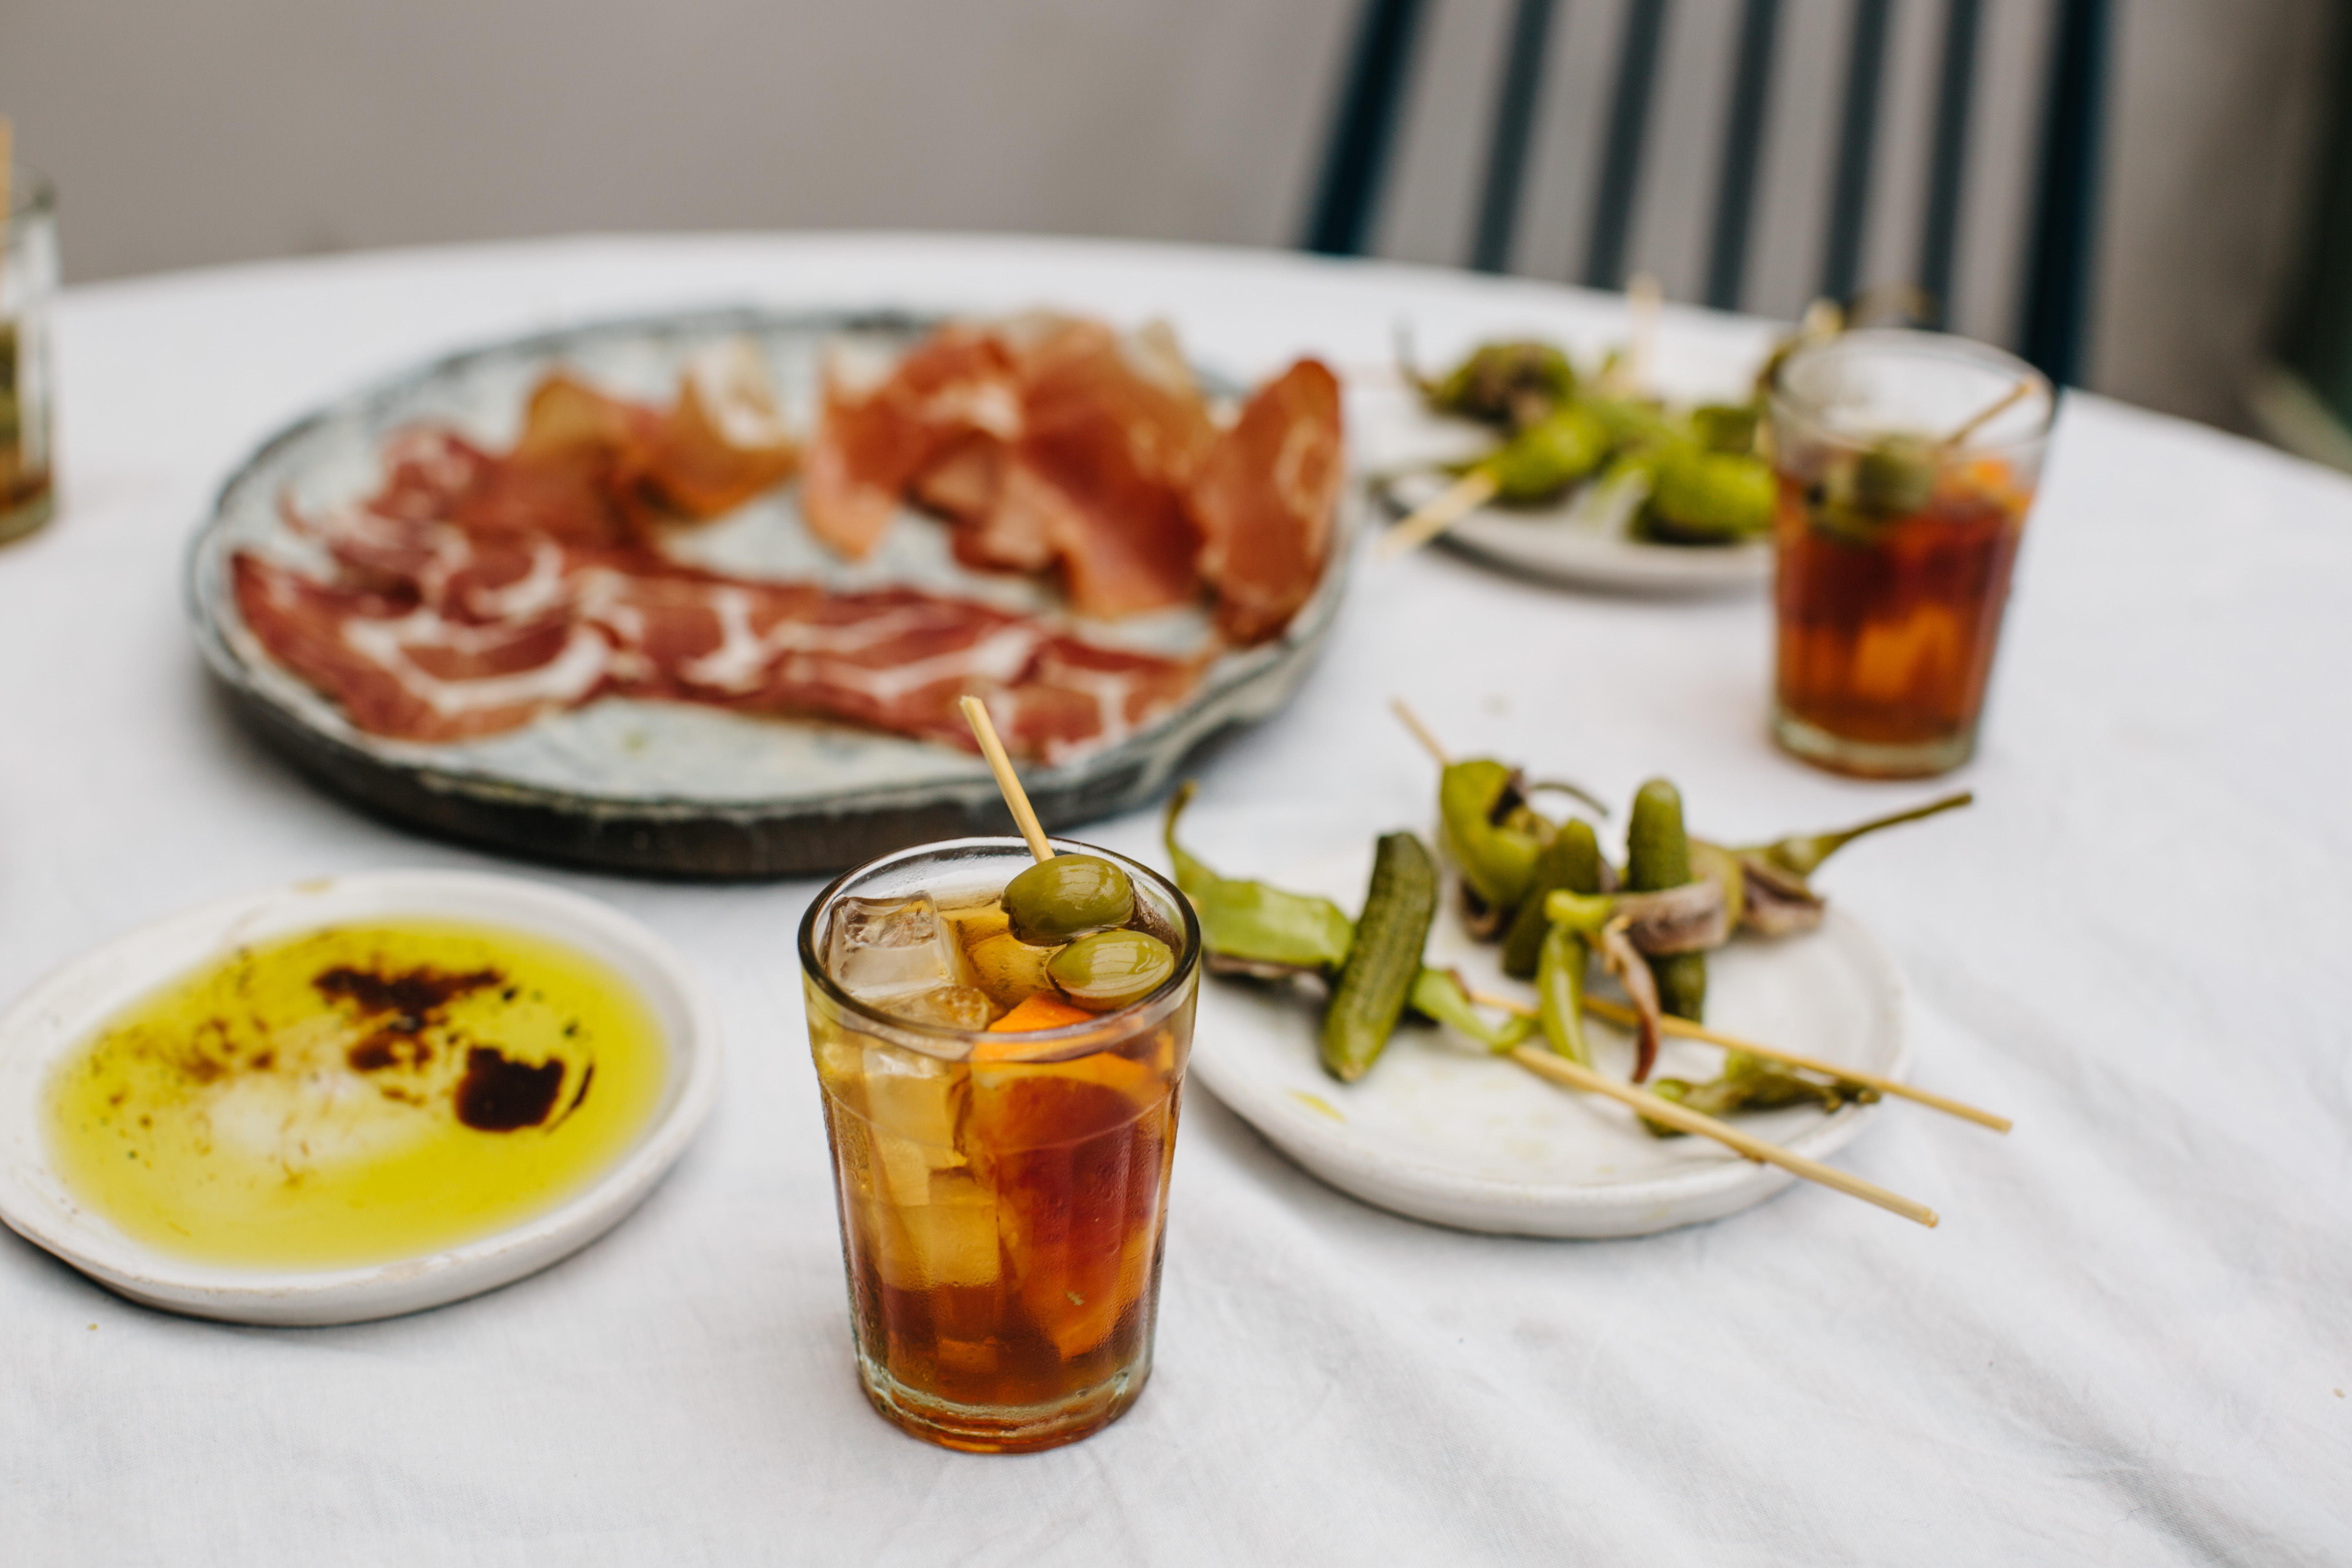 18.Vermouth table-part eaten